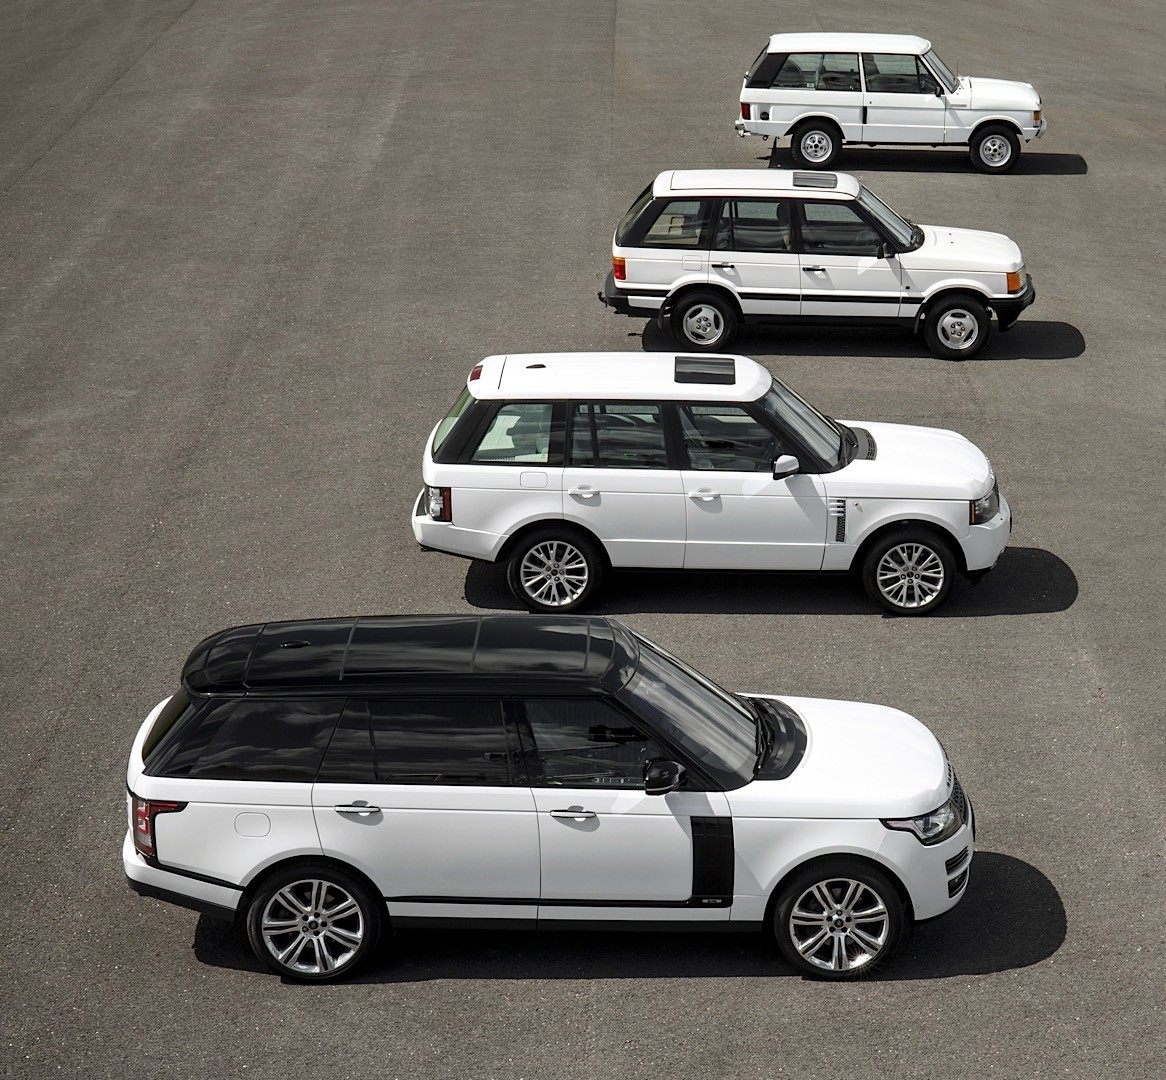 Range Rover SUV Celebrates Its 45th Birthday Today, Land